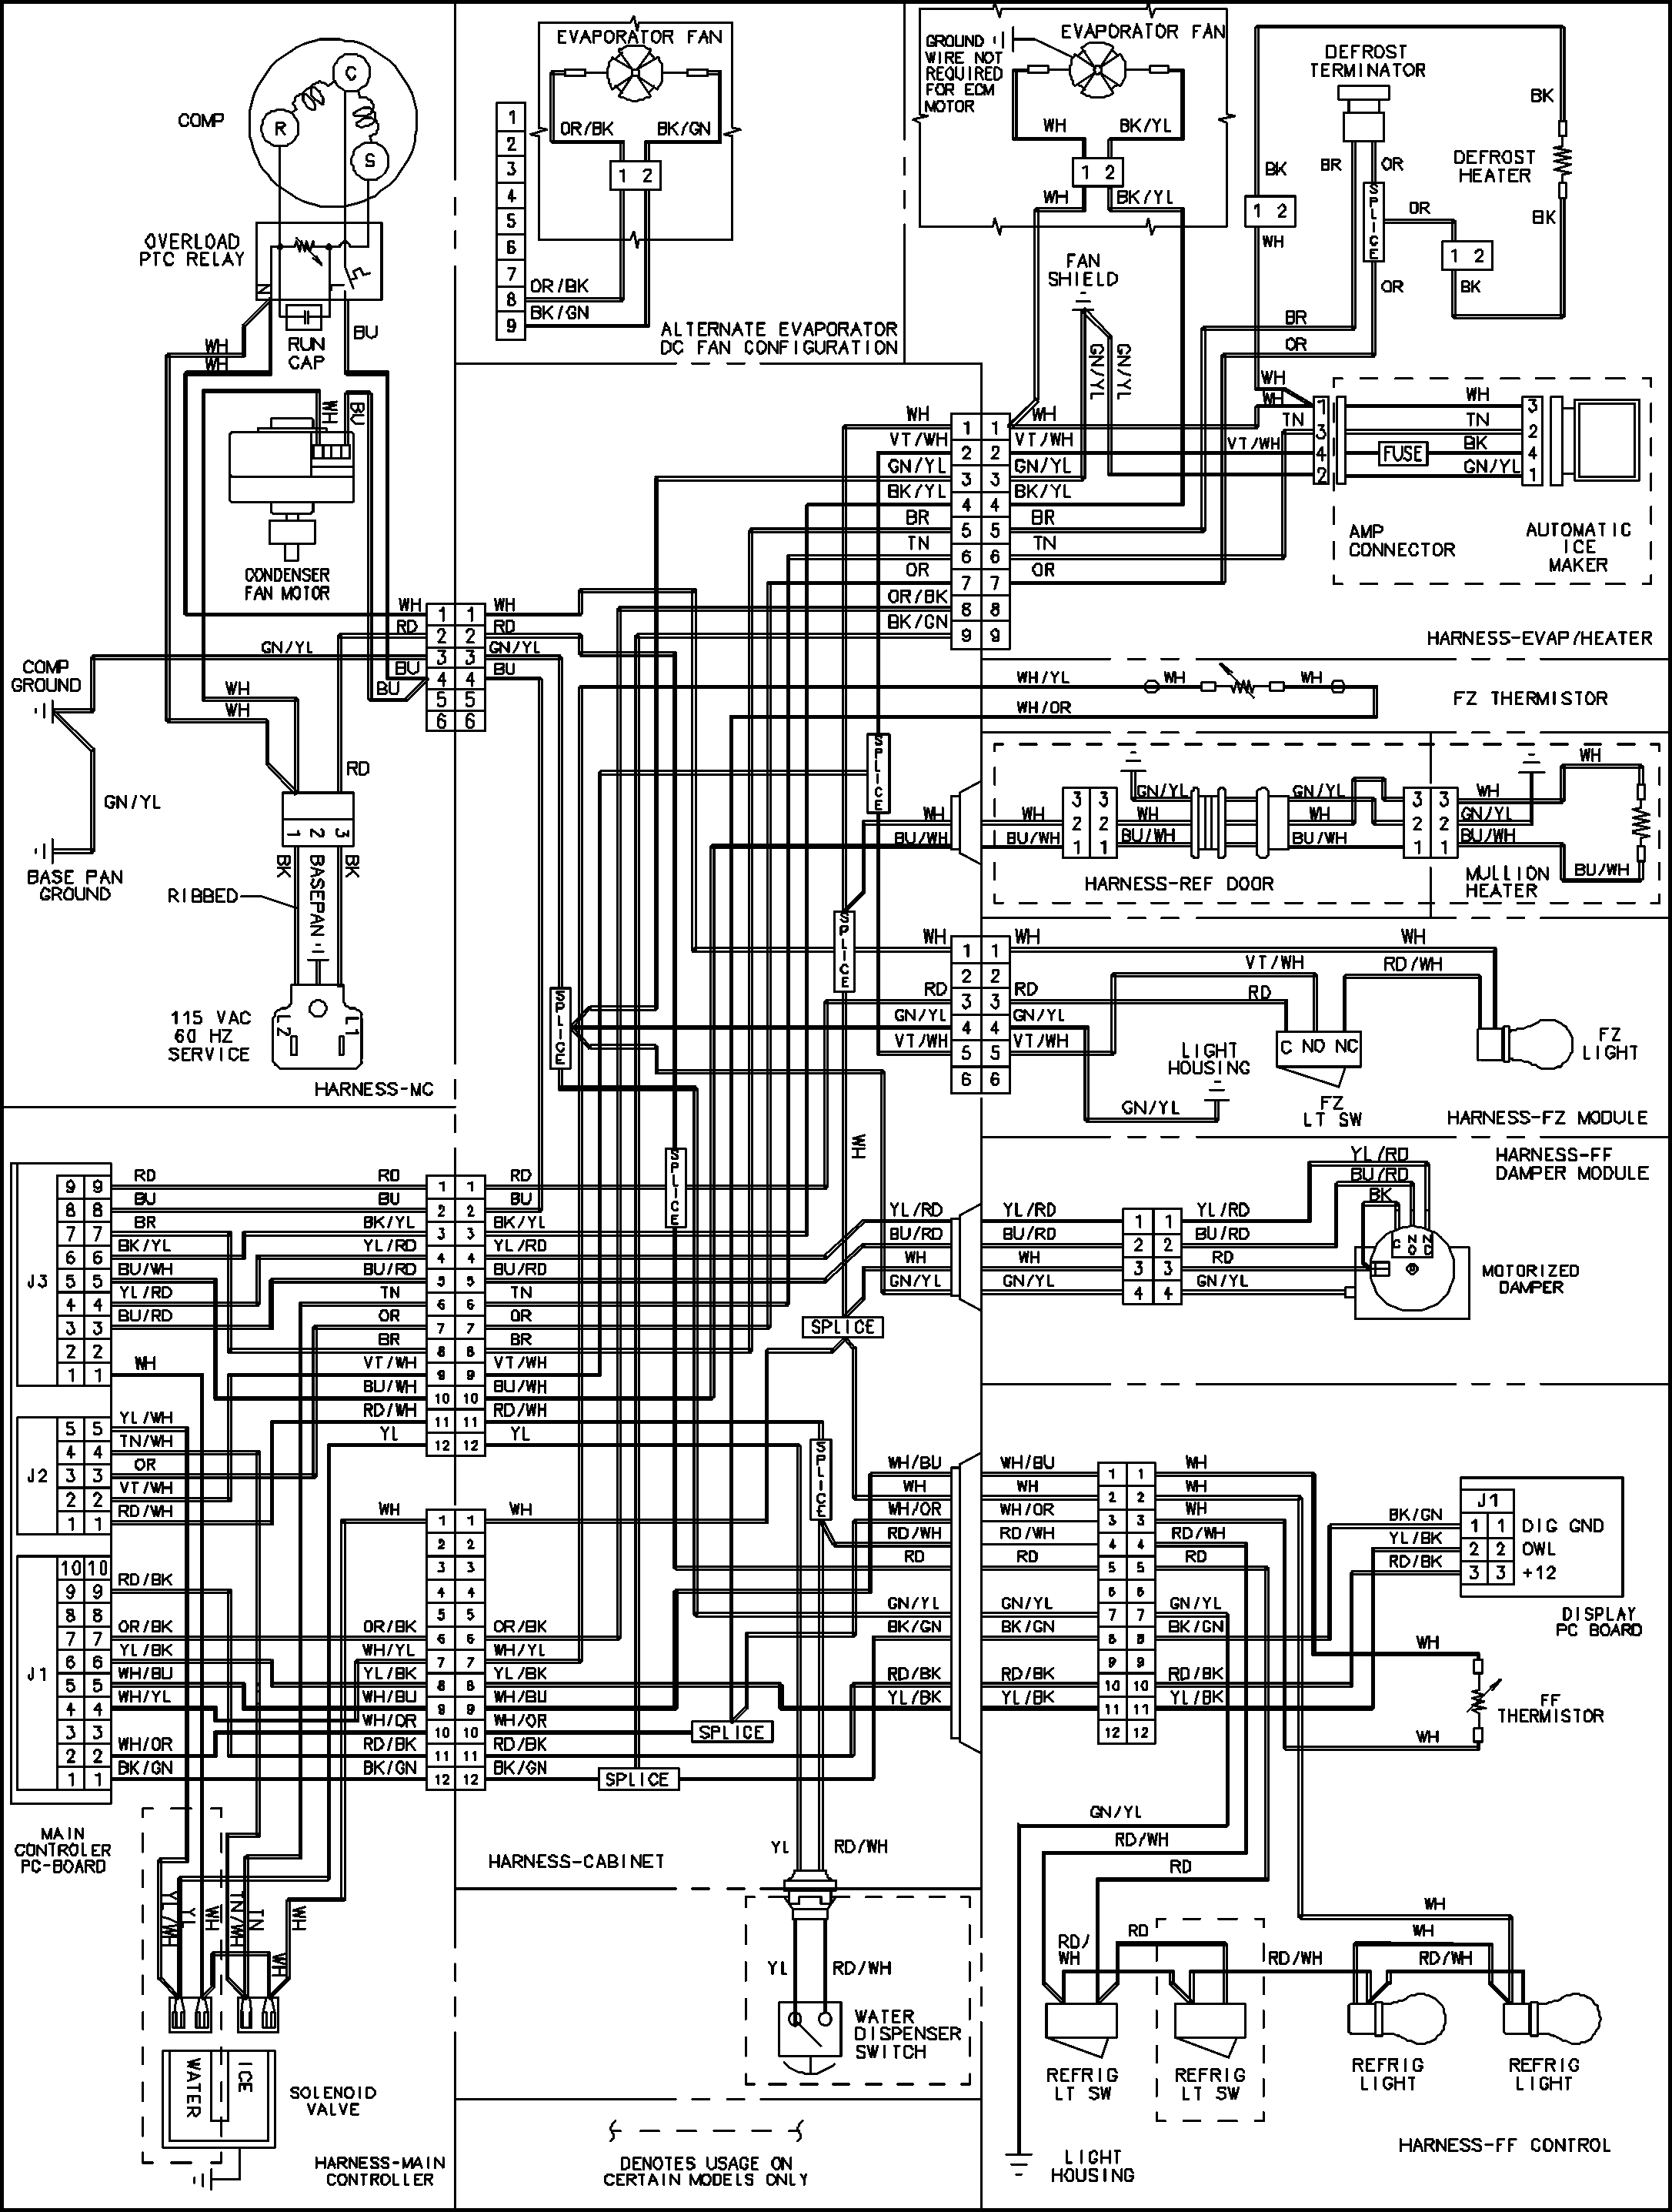 bohn wiring diagrams wiring diagram save  bohn wiring diagrams #5